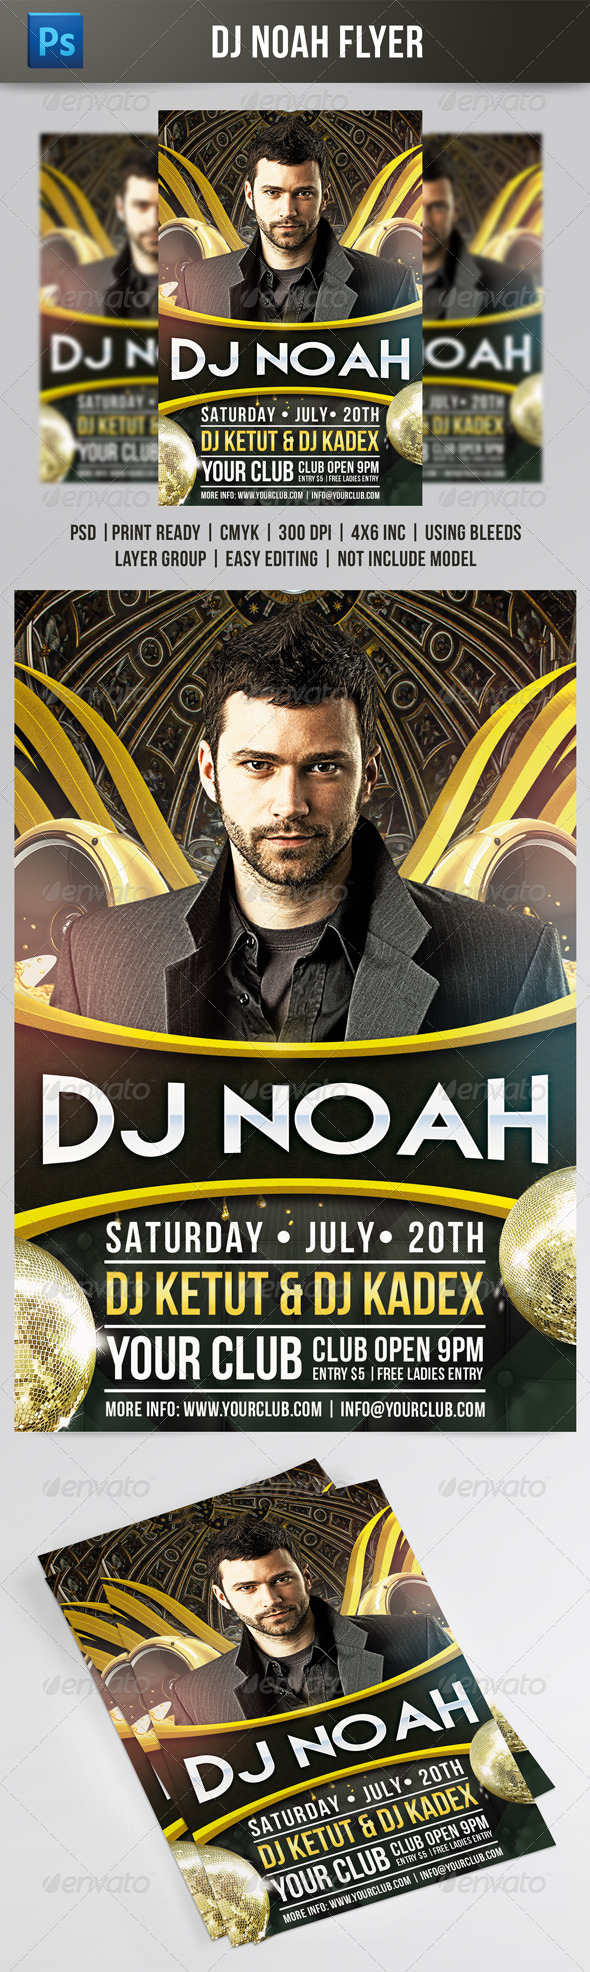 DJ Noah Flyer Template